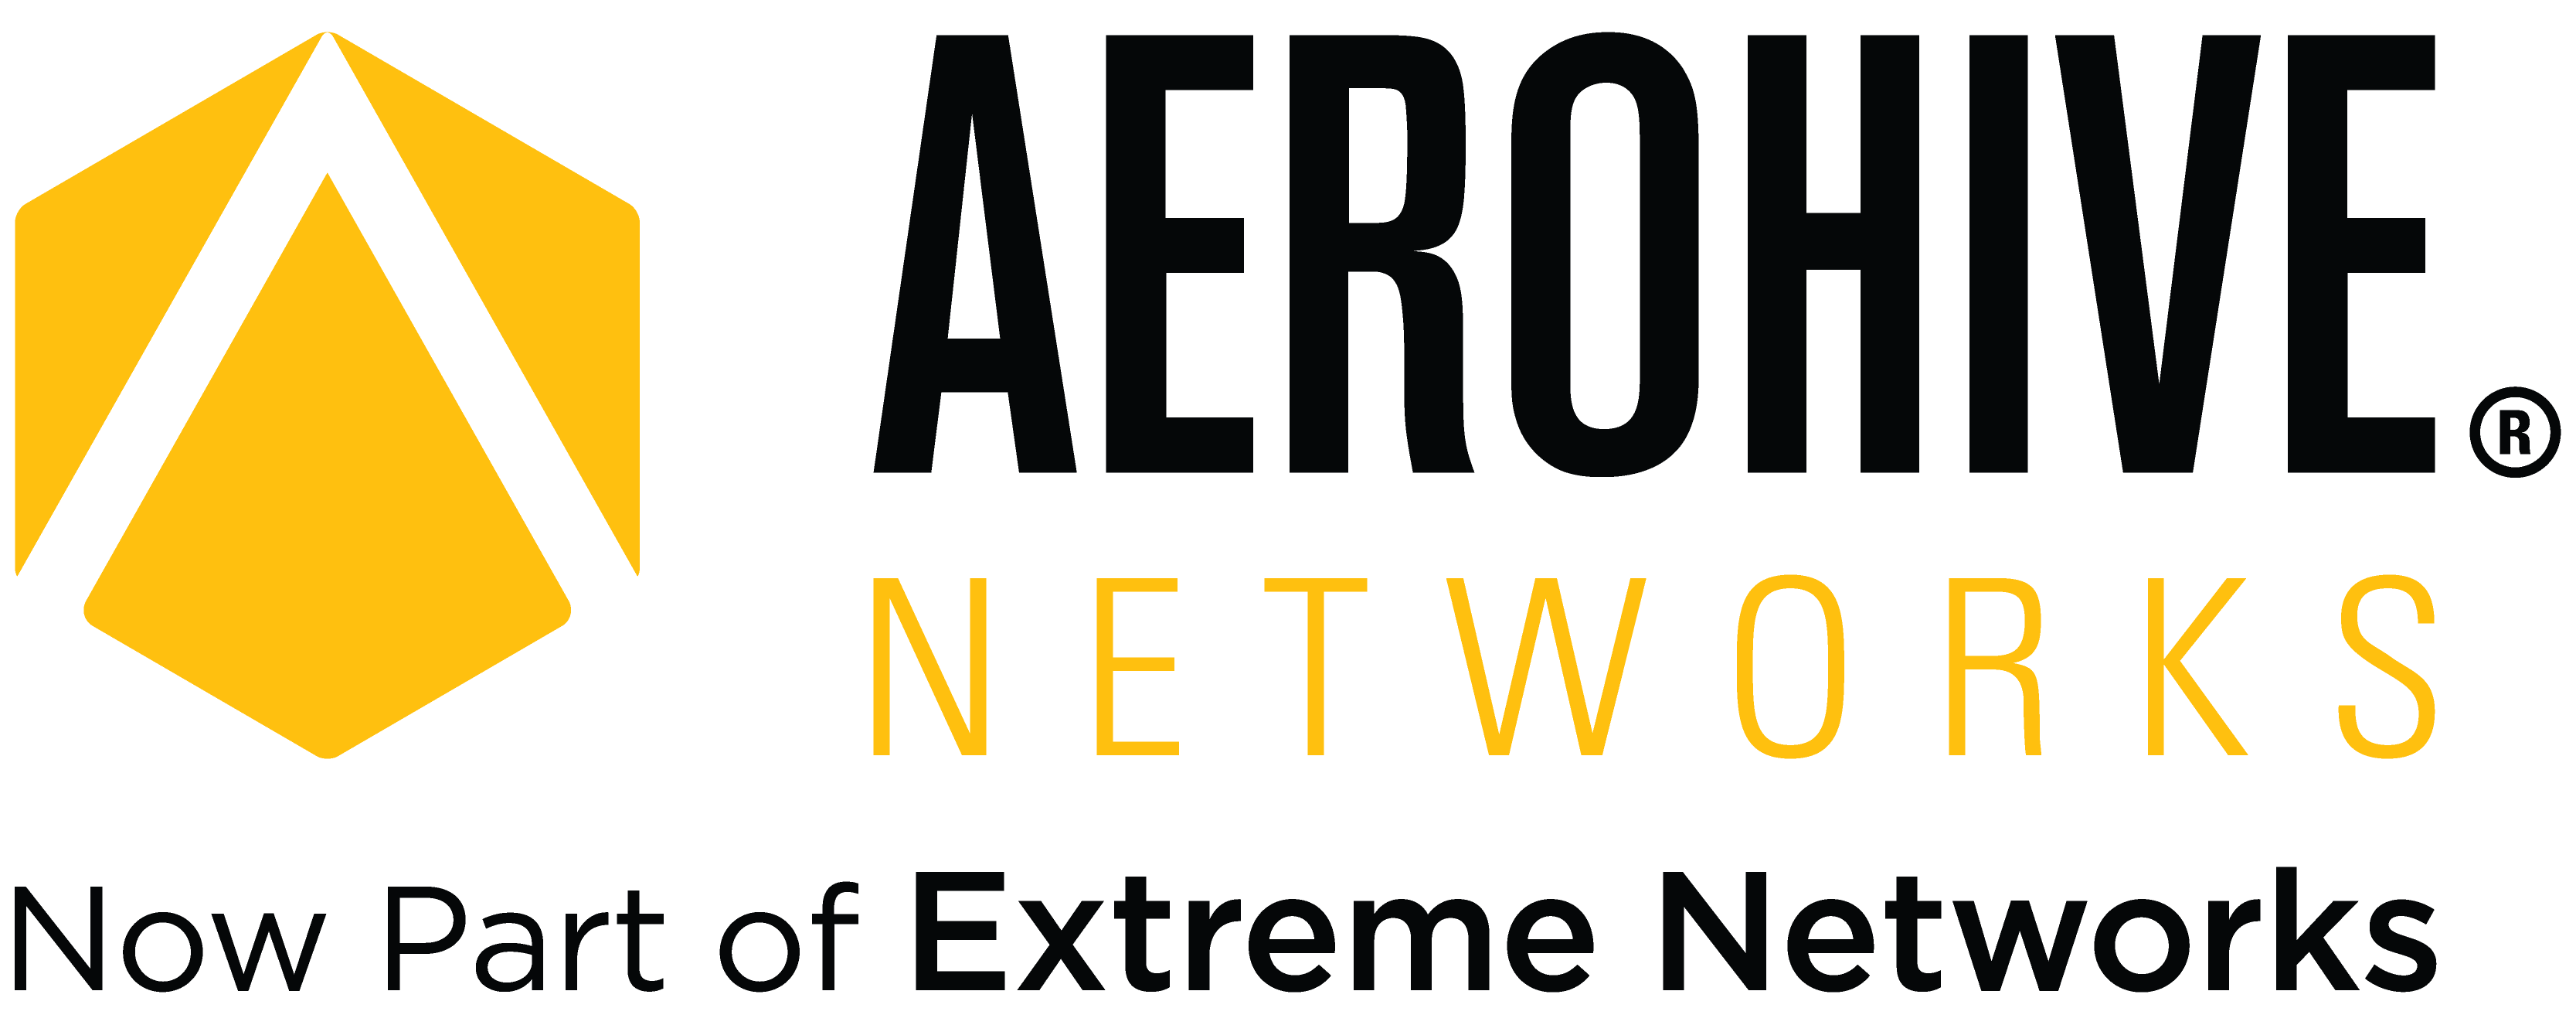 Aerohive, part of Extreme Networks